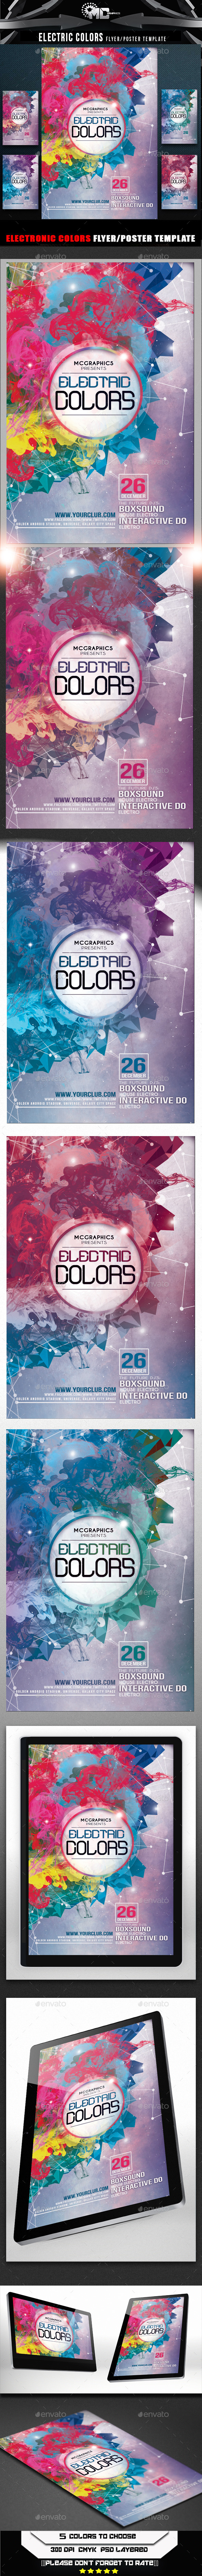 Electric Colors Flyer Template - Clubs & Parties Events